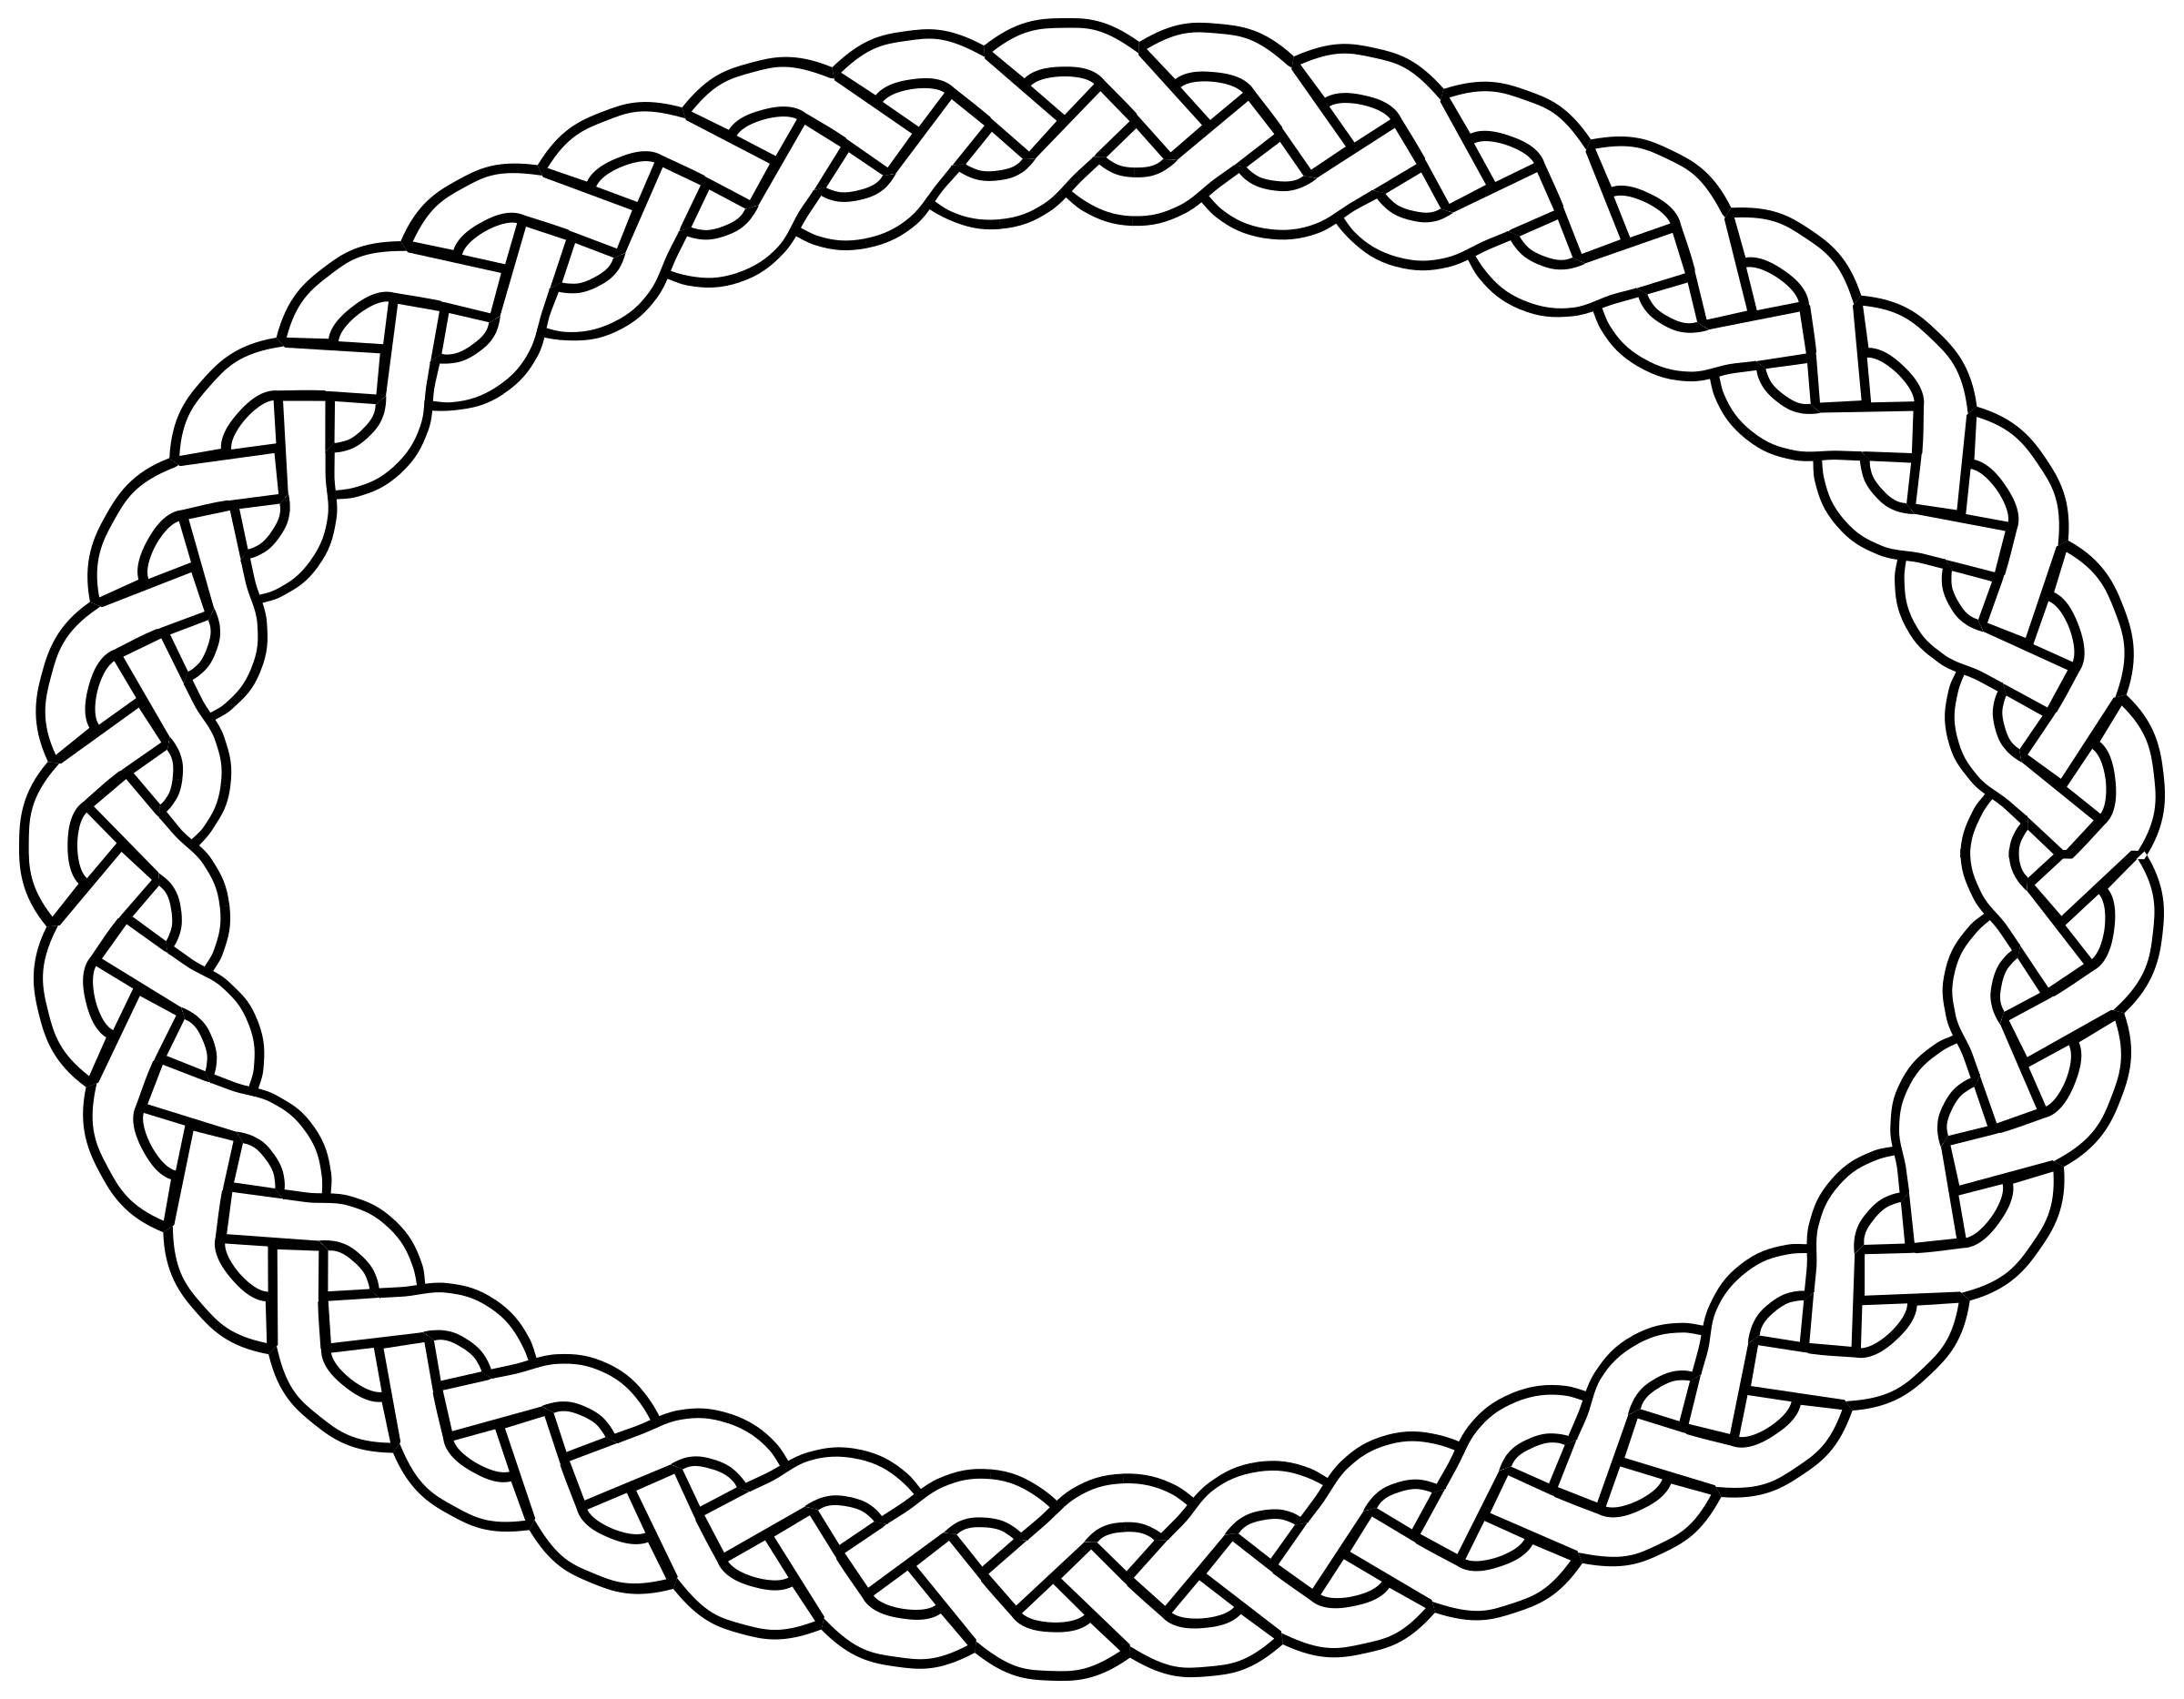 3-plait border oval by pitr